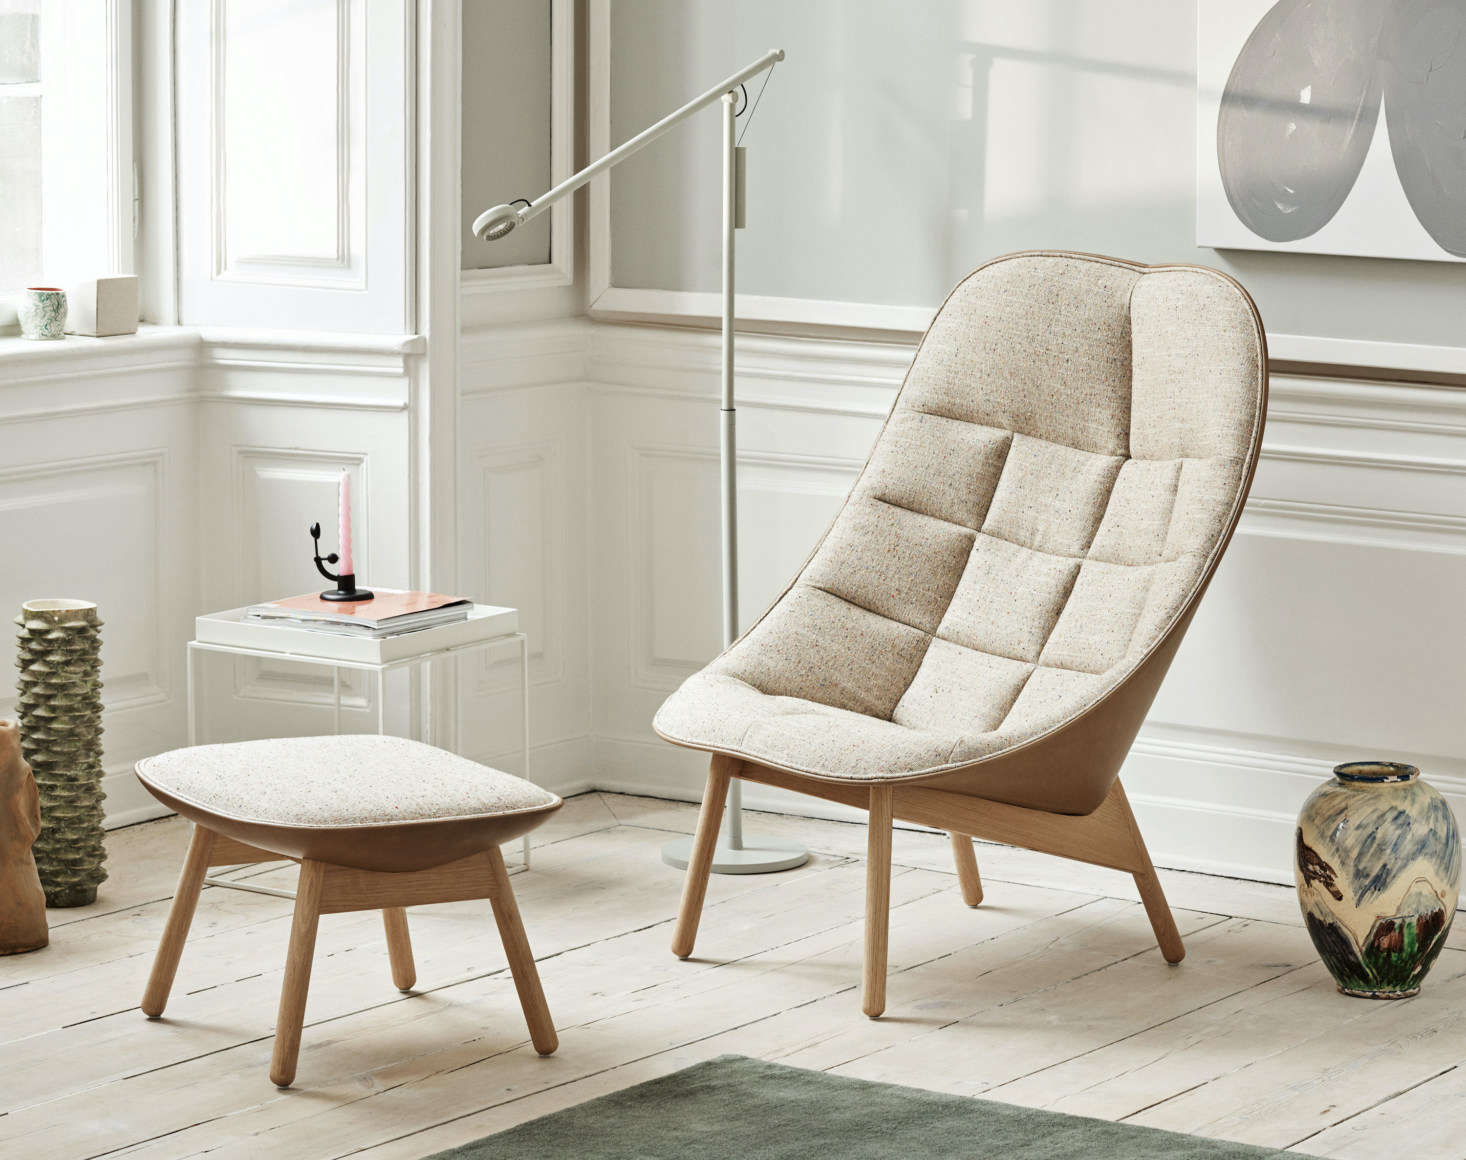 Hay's Uchiwa Lounge Chair and Ottoman (from $